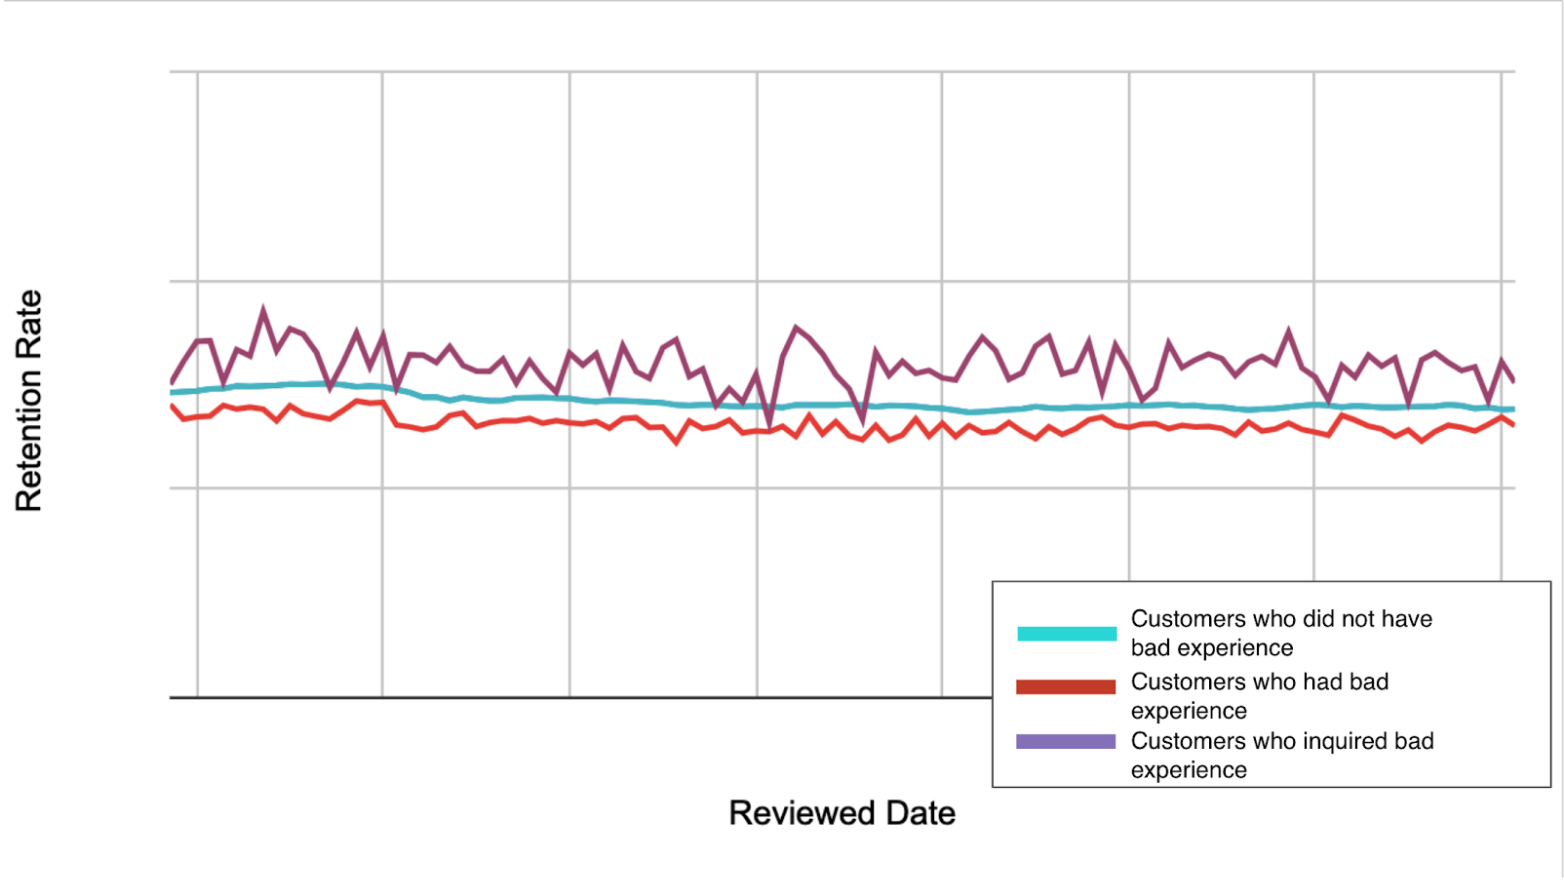 Visualizing and improving retention rates for each customer experience